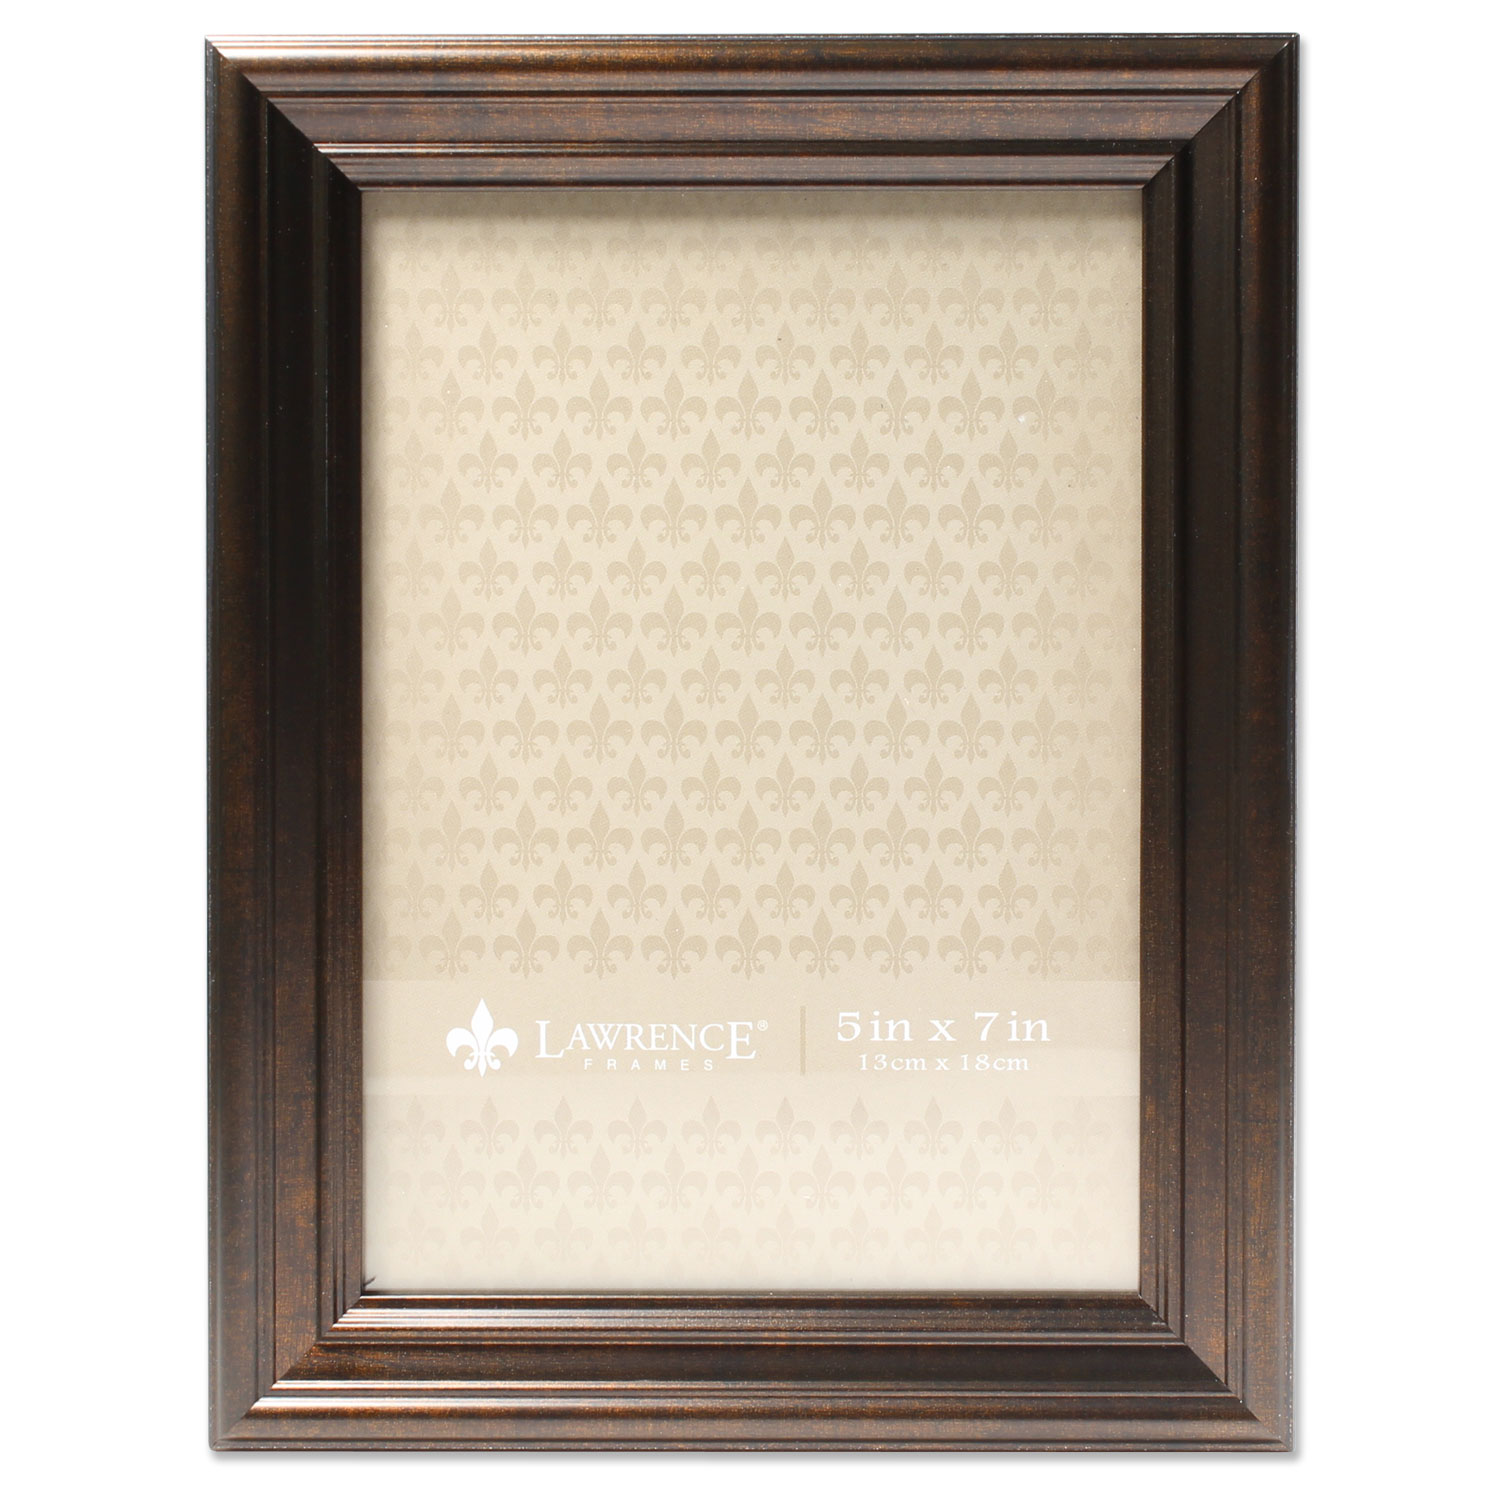 5x7 Classic Detailed Oil Rubbed Bronze Picture Frame by Lawrence Frames